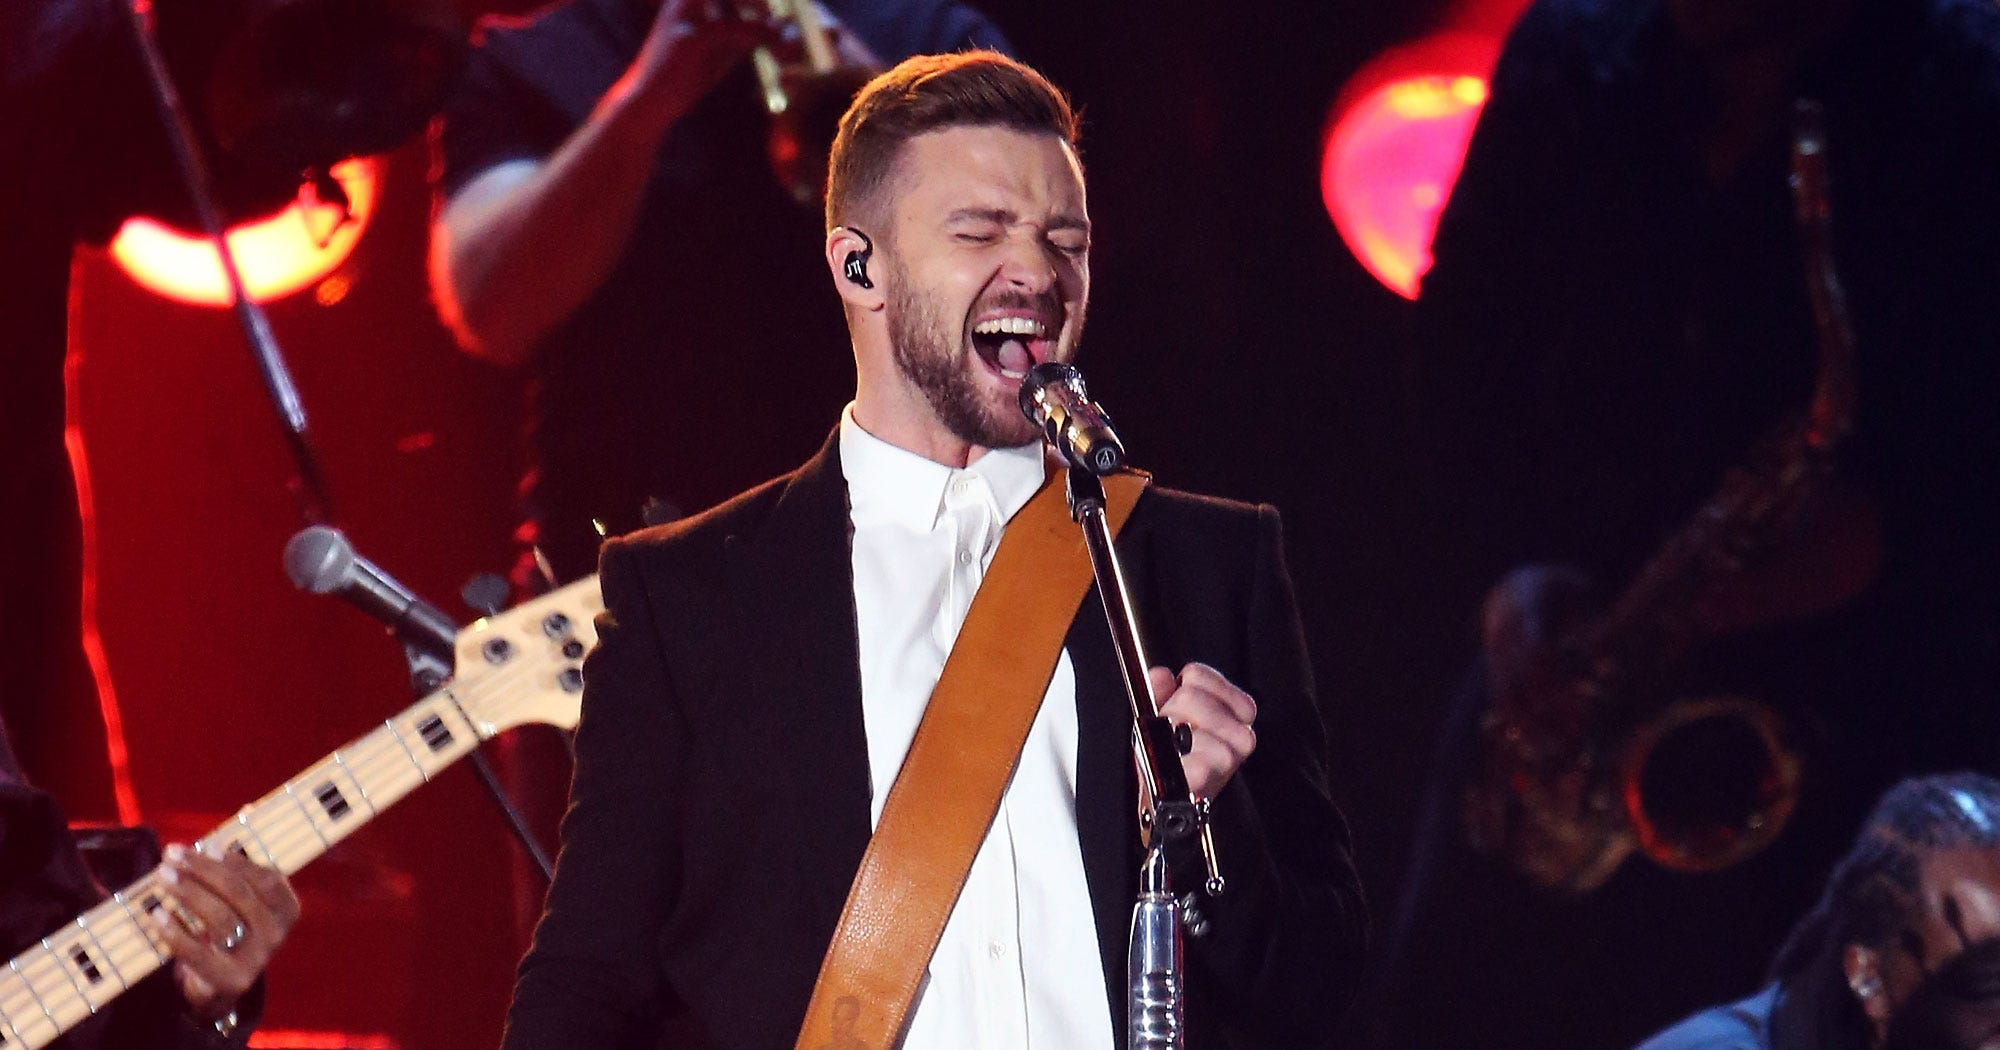 Justin timberlake 2015 cma performance drink you away for Tennessee whiskey justin timberlake